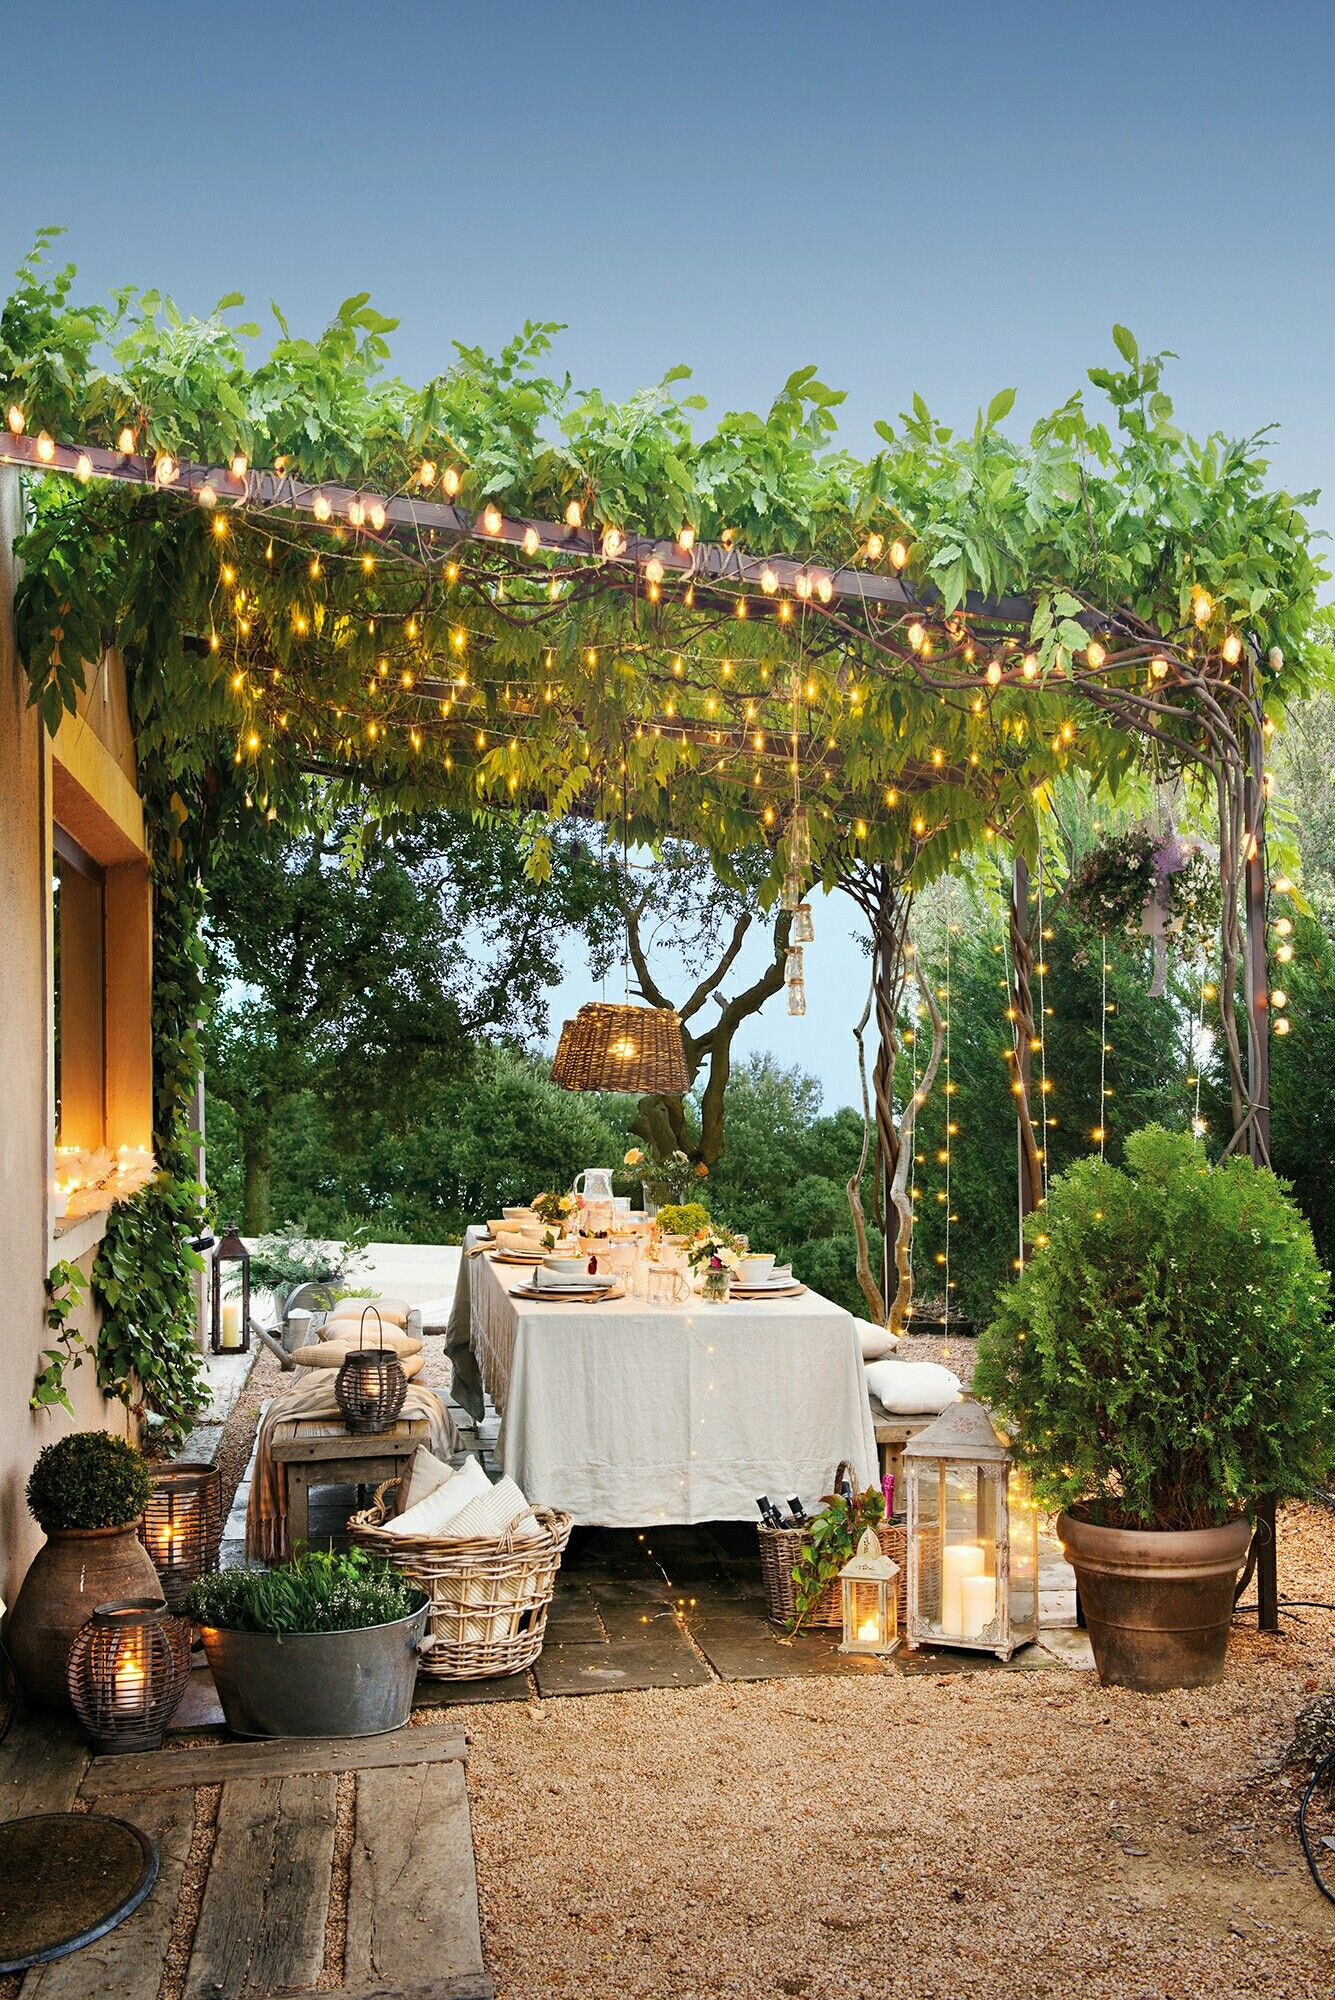 Cover Patio Pergola Outdoor Dining Area Under A Vine Covered Pergola With Wooden Table